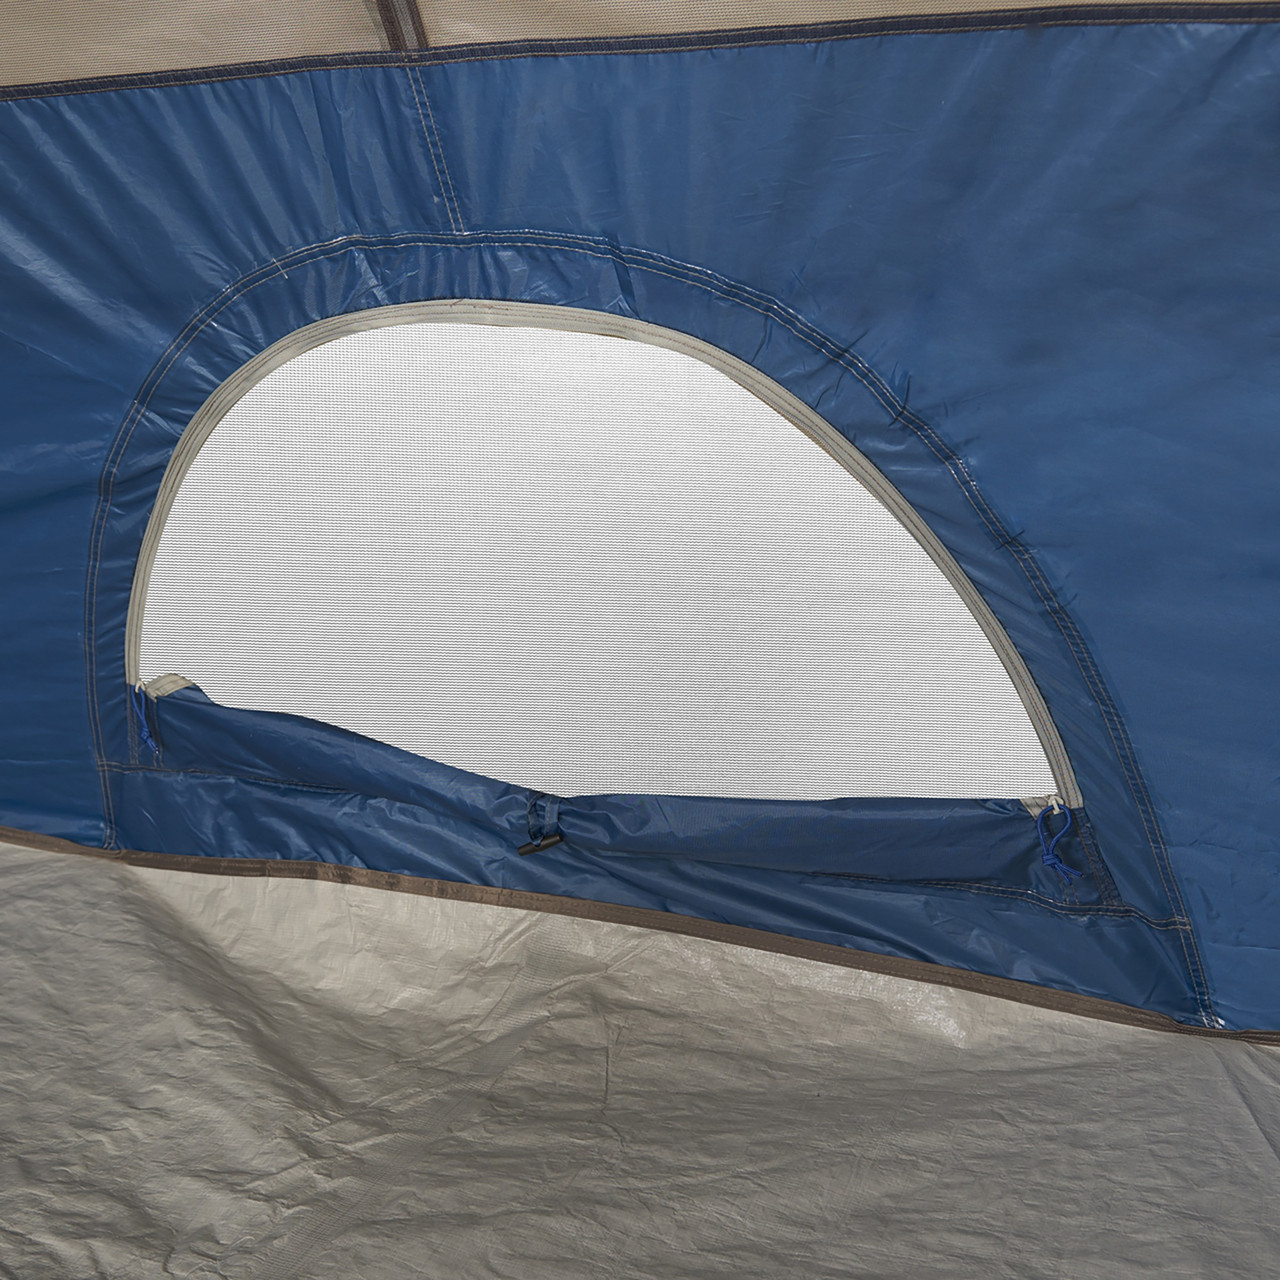 Interior close up of Wenzel Tamarack 6 Person Dome Tent, showing window opening